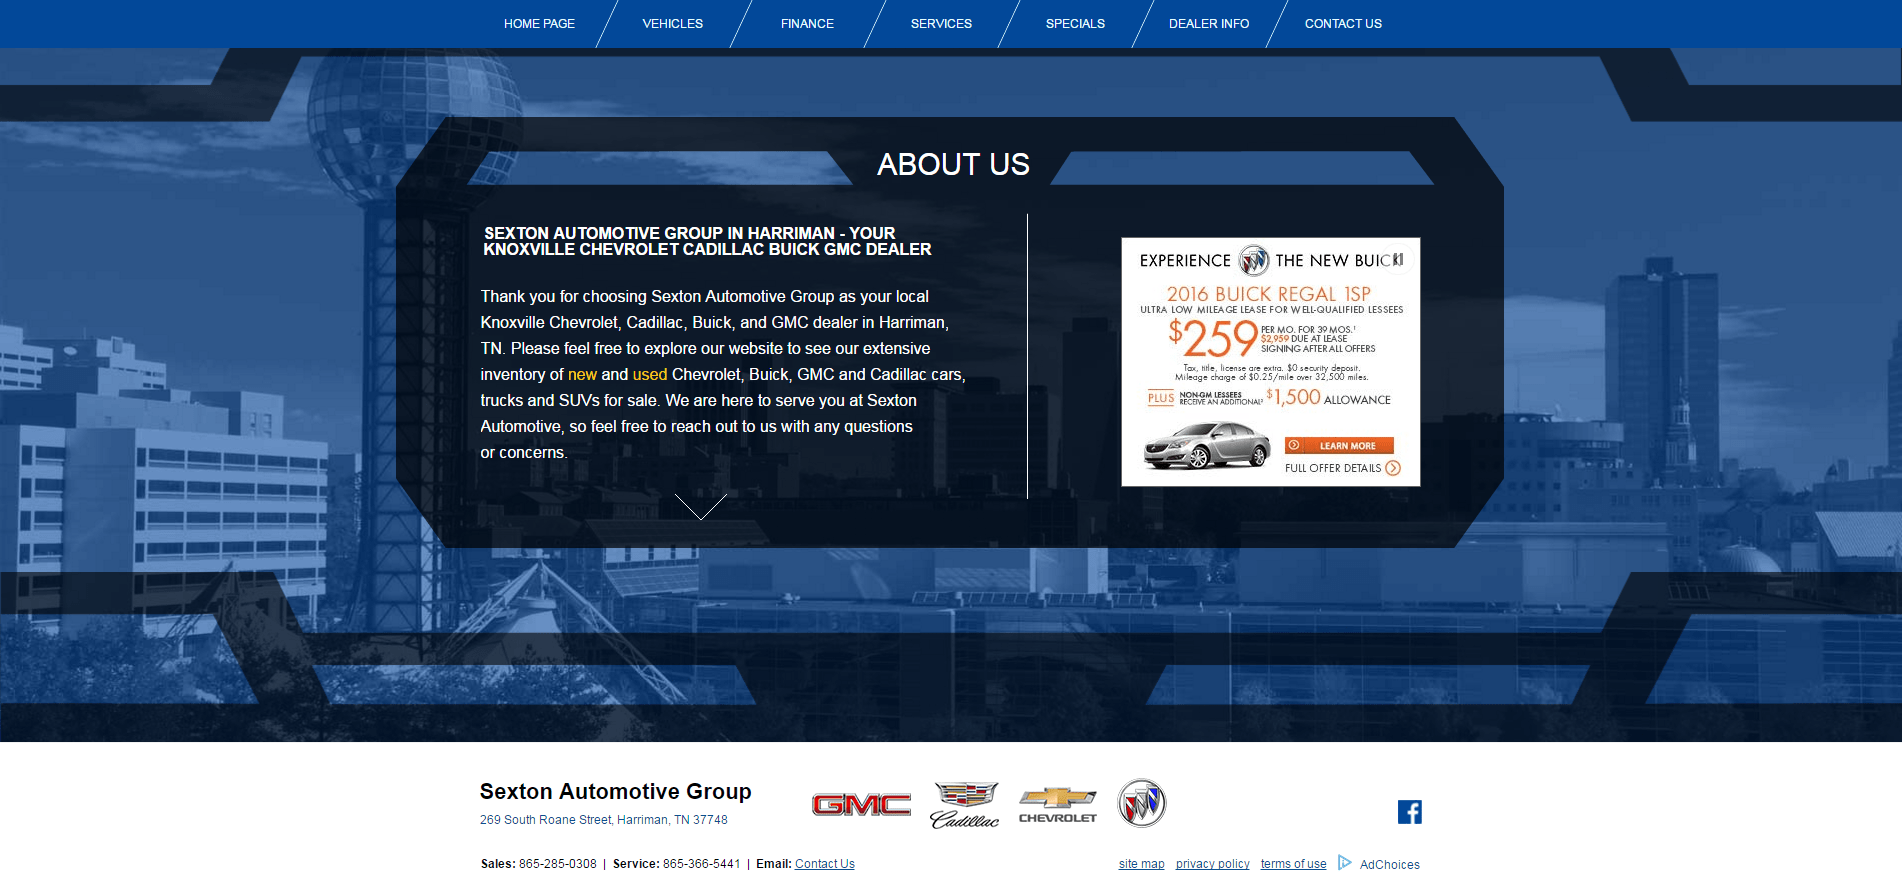 Sexton Automotive Group (After) 1.5